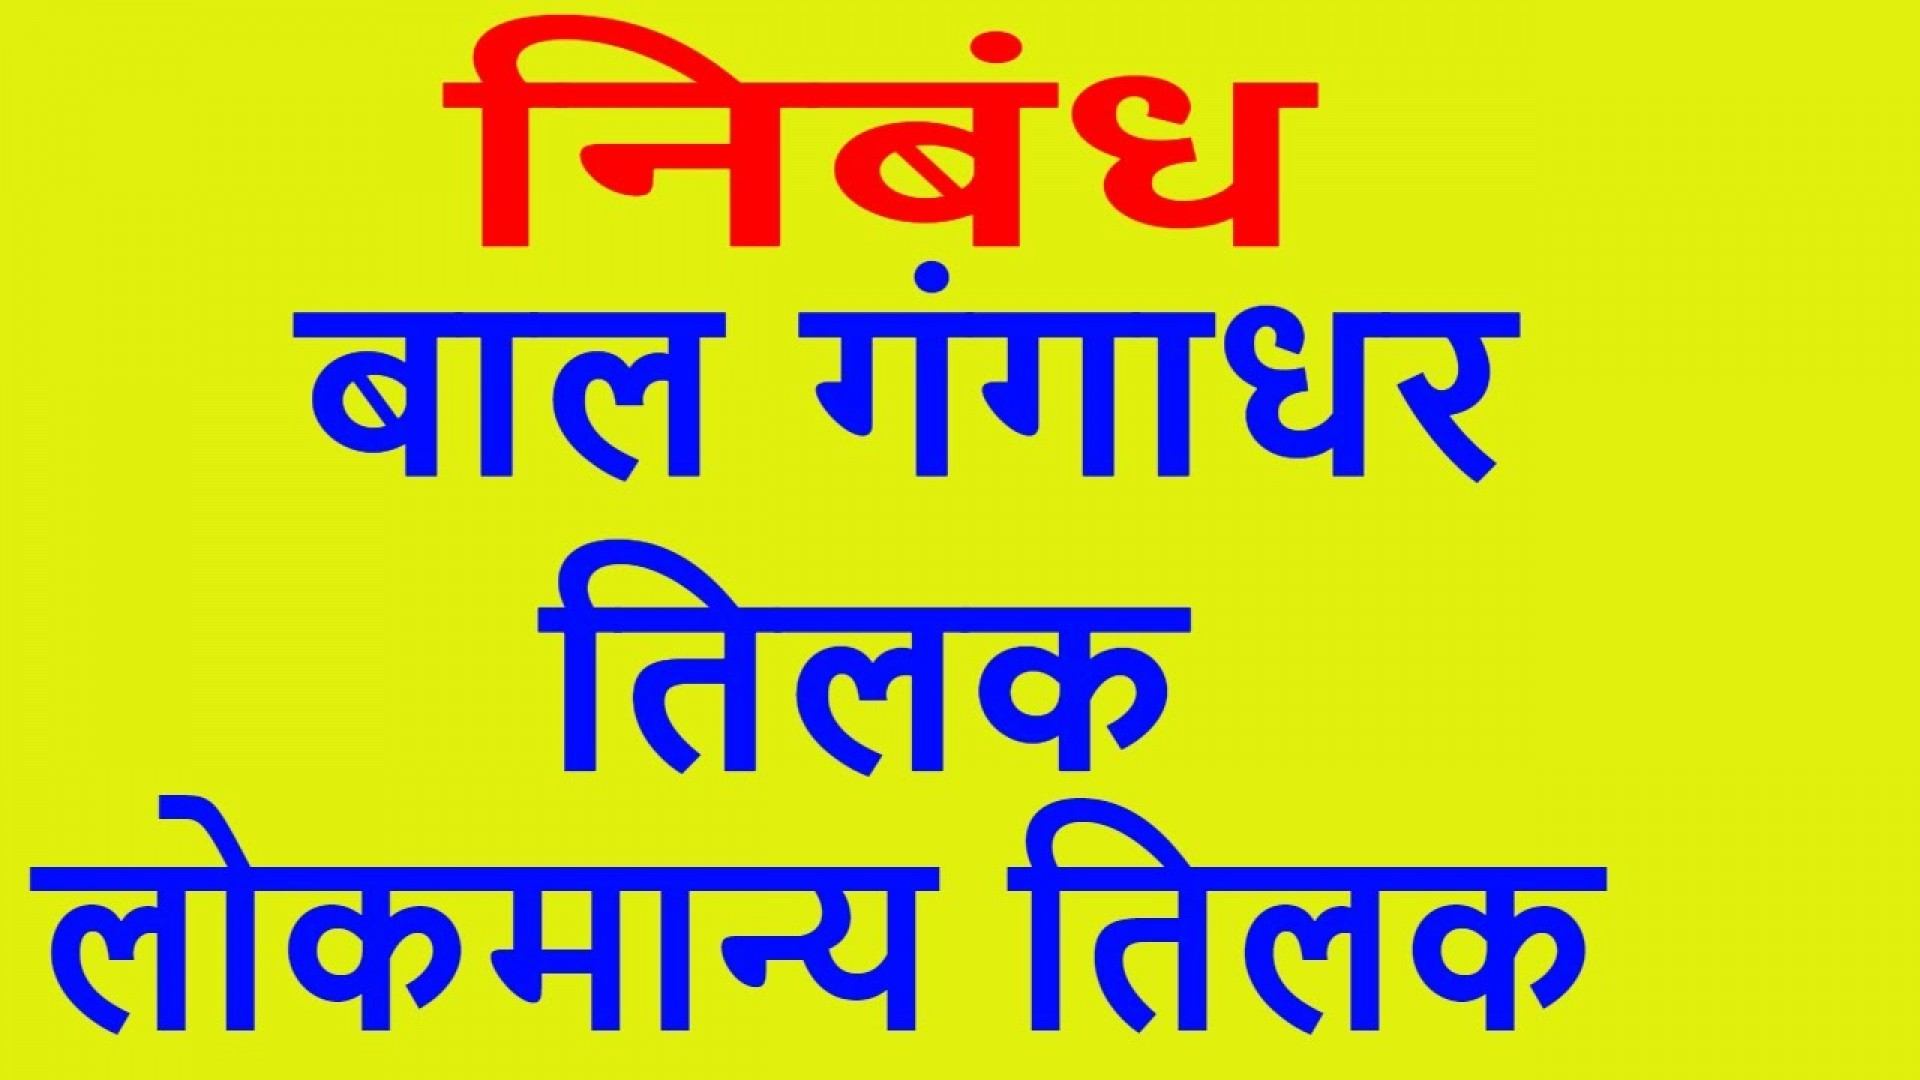 006 Essay Lokmanya Tilak Maxresdefault Incredible Aste Tar In Marathi On Bal Gangadhar Hindi Pdf 1920